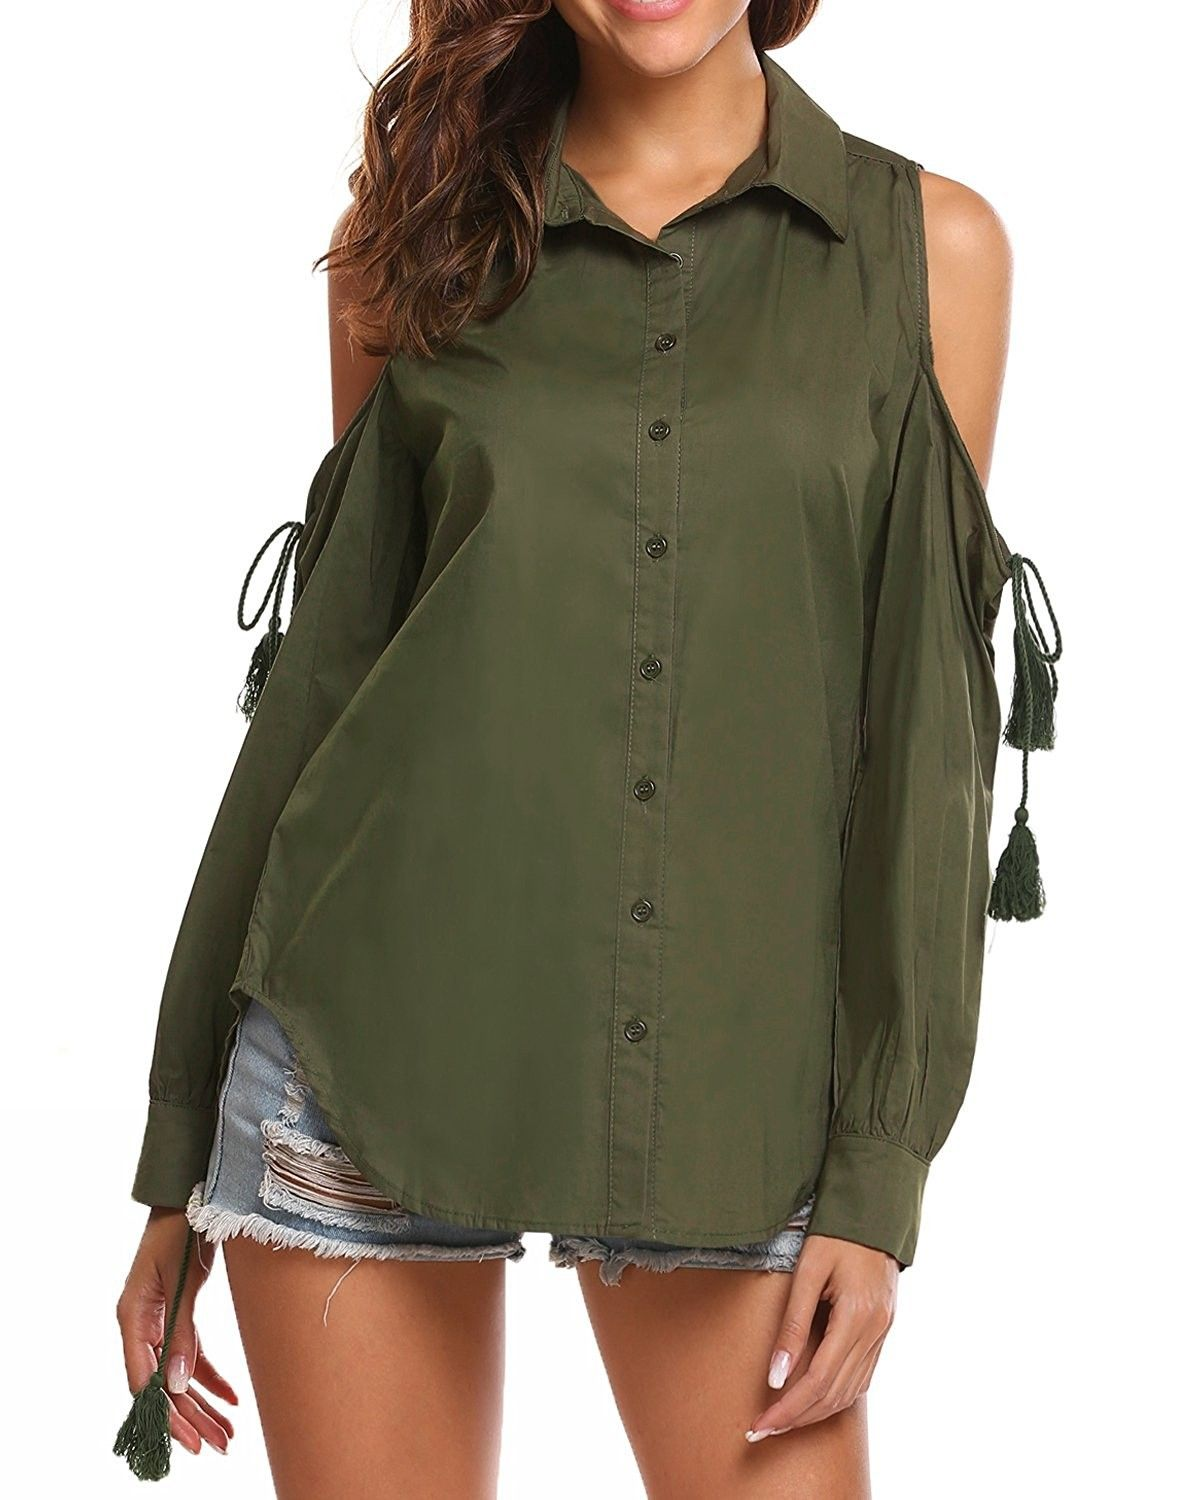 985cb027 Women's Clothing, Tops & Tees, Blouses & Button-Down Shirts, Womens Cold  Shoulder Long Sleeve Button Down Shirt Blouse with Tassel Accents - Army  Green ...